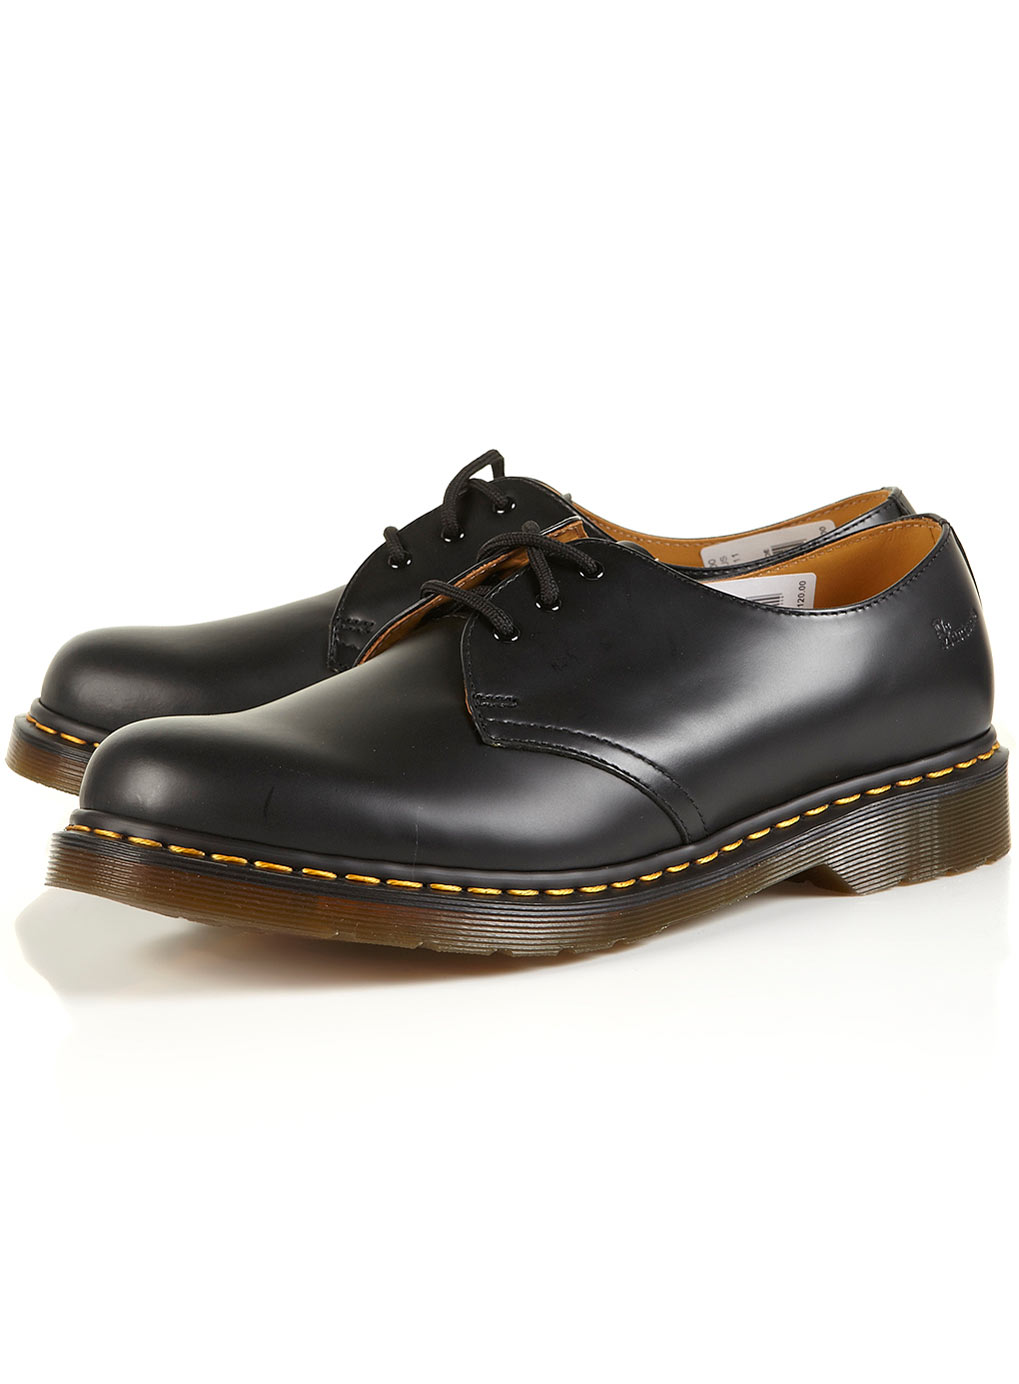 dr martens shoes dr martens black original leather shoes - menu0027s casual shoes - shoes and derskld